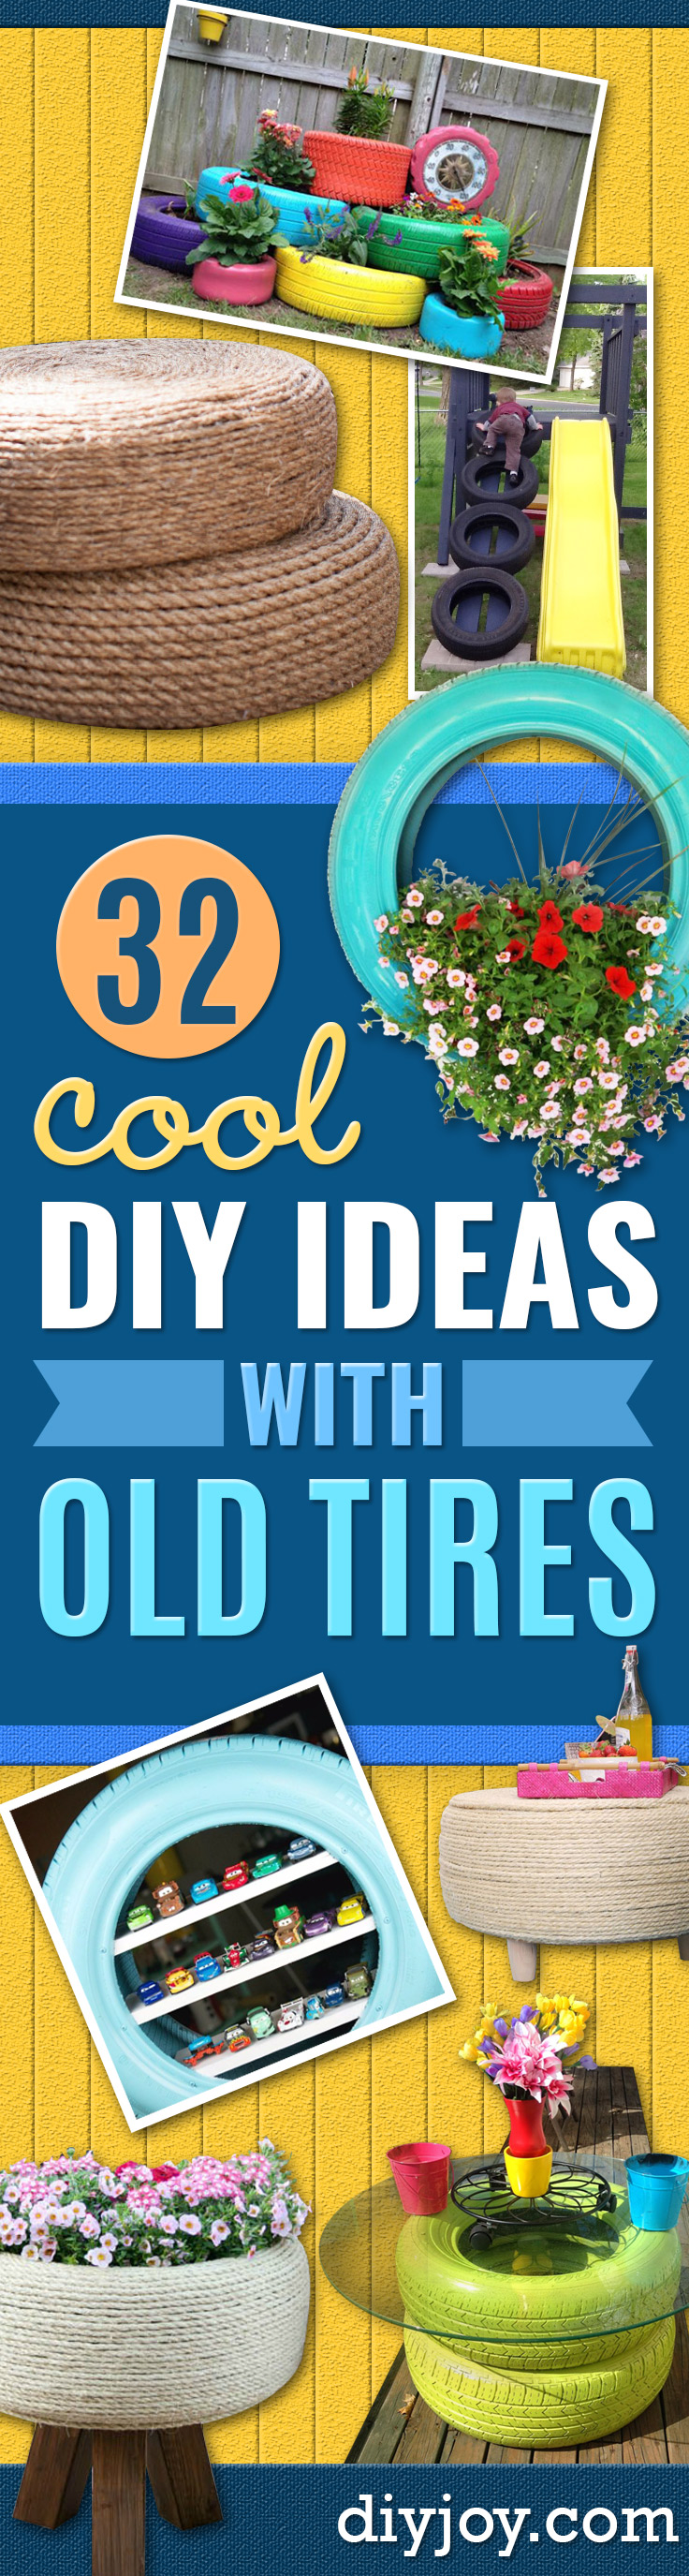 DIY Ideas With Old Tires - Rustic Farmhouse Decor Tutorials and Projects Made With An Old Tire - Easy Vintage Shelving, Wall Art, Swing, Ottoman, Seating, Furniture, Gardeing Ideas and Home Decor for Kitchen, Living Room, Bathroom and Backyard - Creative Country Crafts, Rustic Wall Art and Accessories to Make and Sell http://diyjoy.com/diy-projects-old-tires